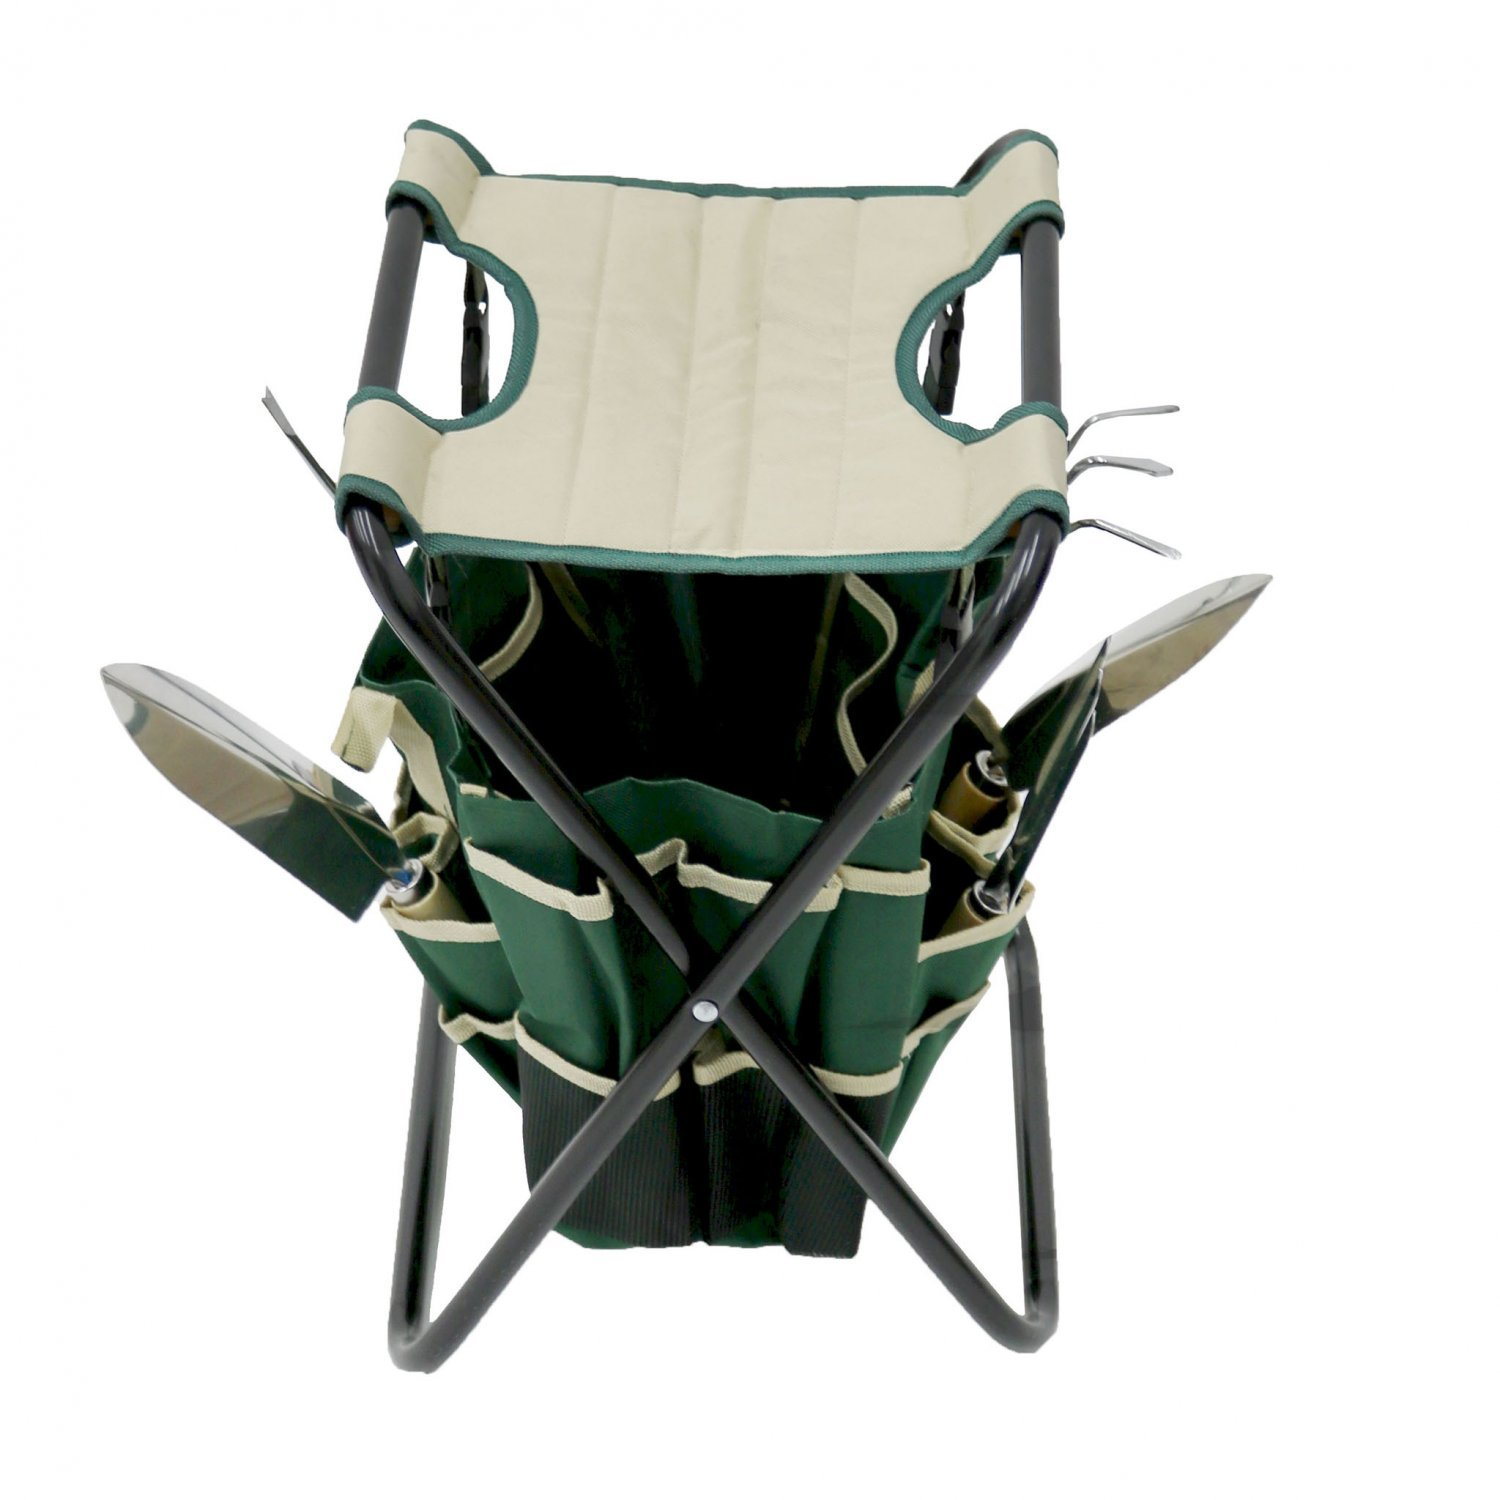 ... Folding Gardeners Stool With 5pc Tools And Storage Bag Gardening ...